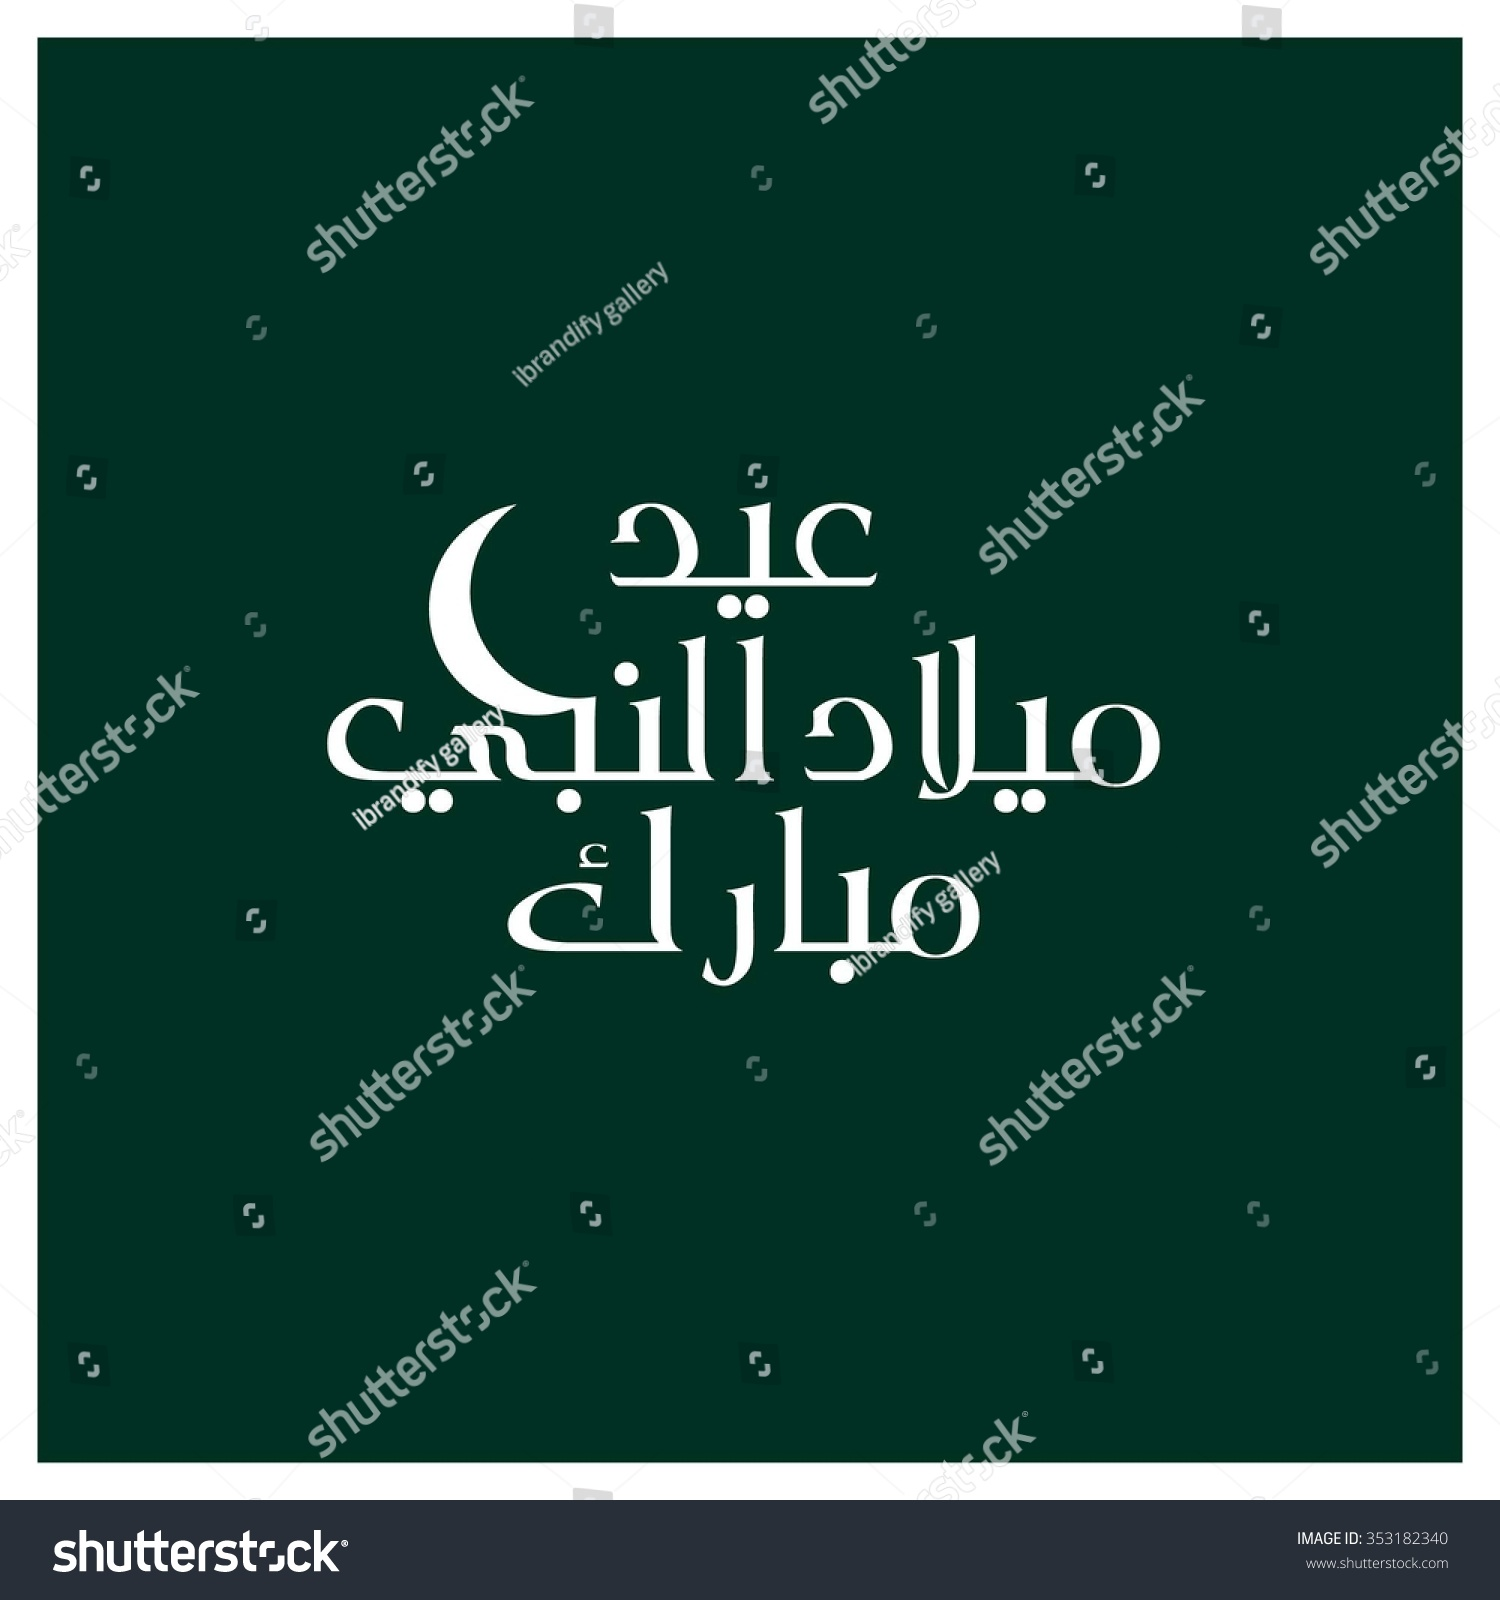 Great Milad Eid Al-Fitr Decorations - stock-vector-arabic-islamic-calligraphy-of-text-eid-milad-un-nabi-for-muslim-community-festival-milad-353182340  Picture_837464 .jpg